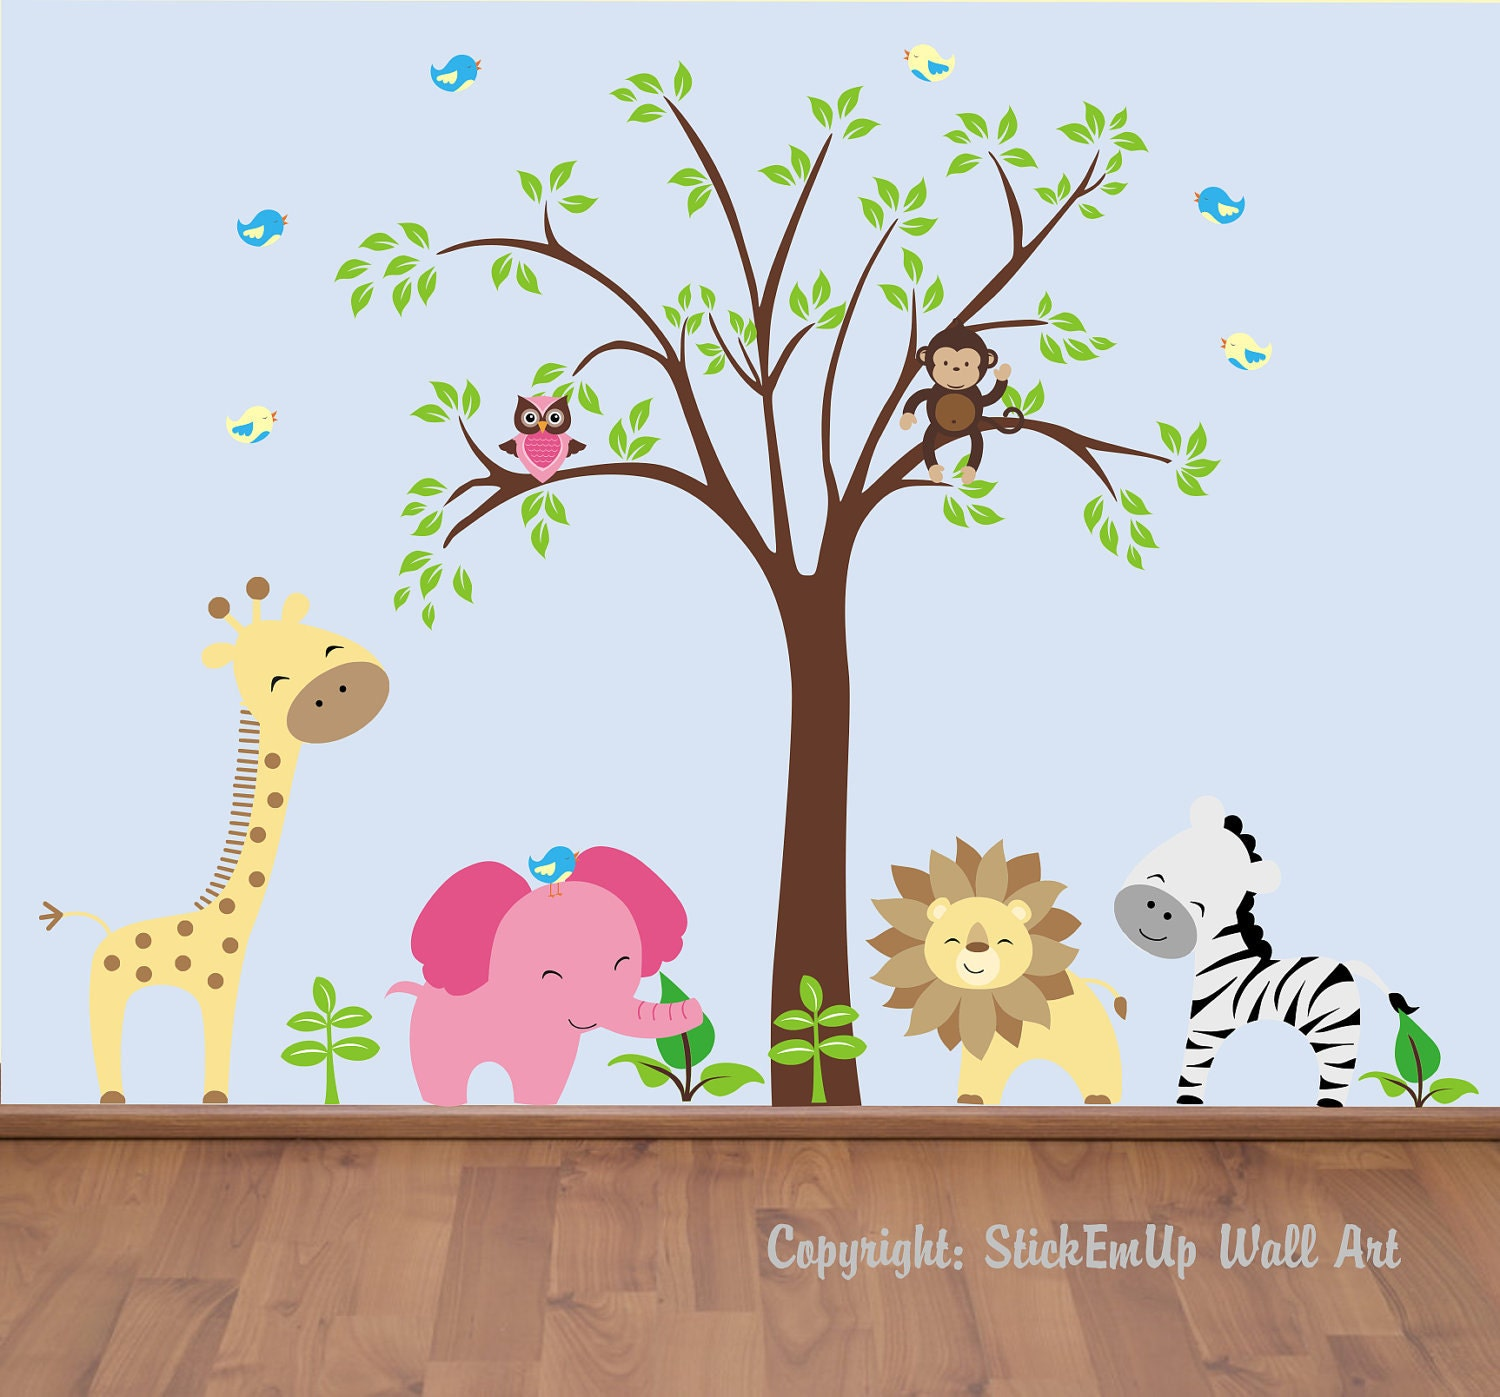 Item details for Baby room decoration wall stickers